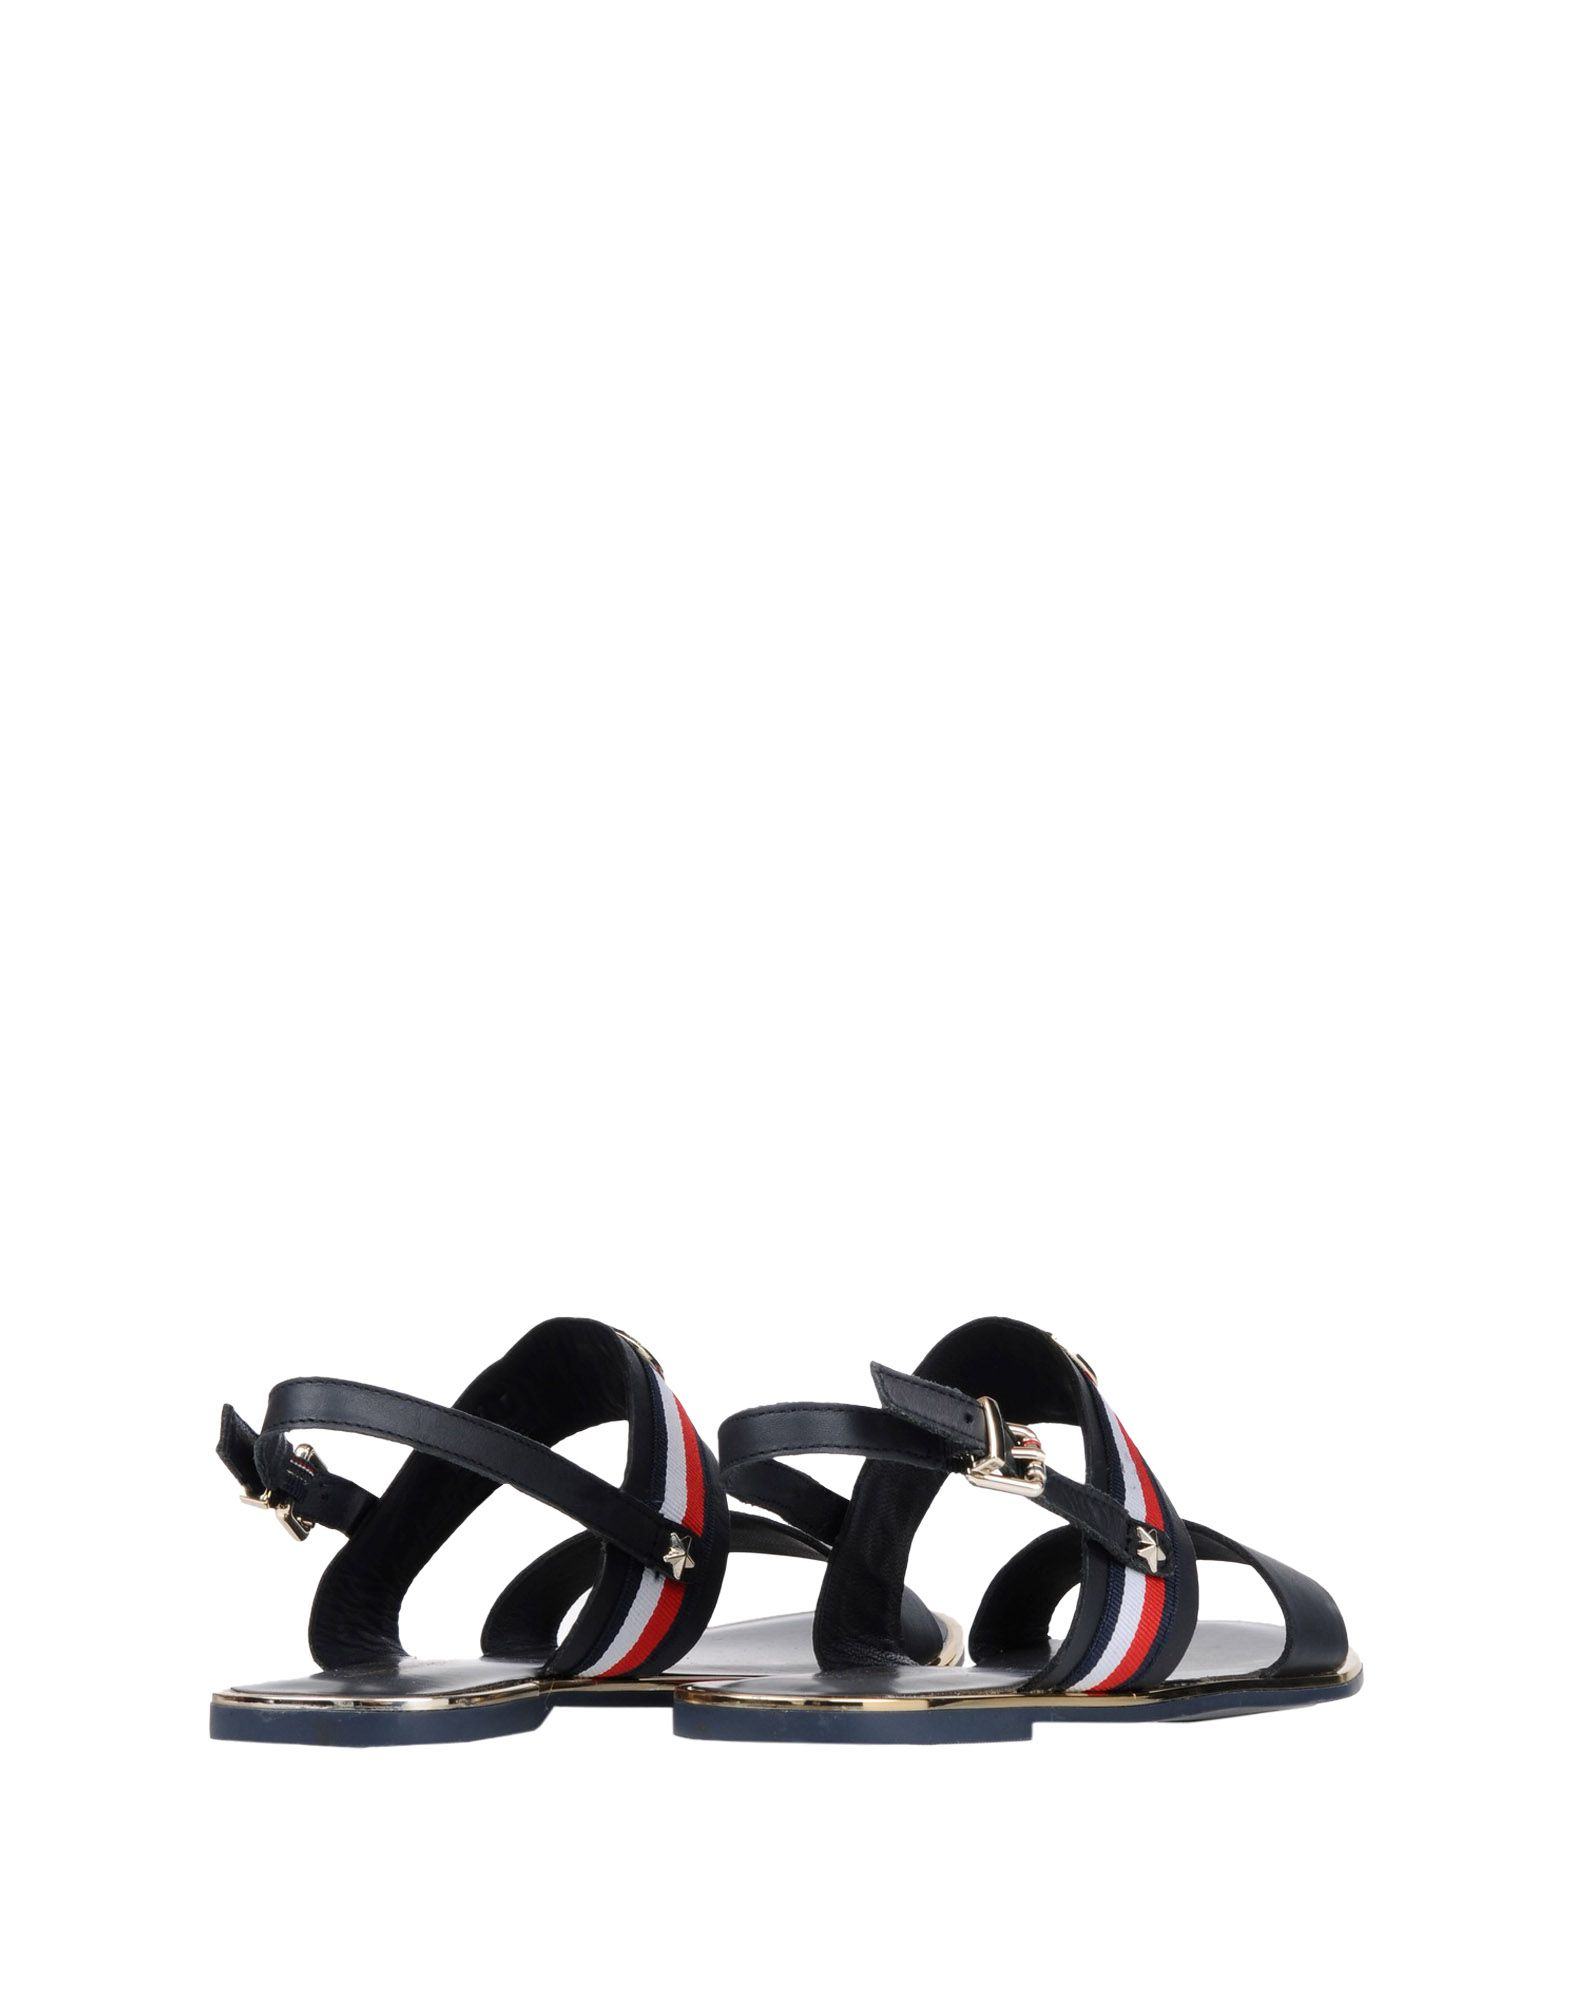 Sandales Tommy Hilfiger Corporate Ribbon Flat Sandal - Femme - Sandales Tommy Hilfiger sur